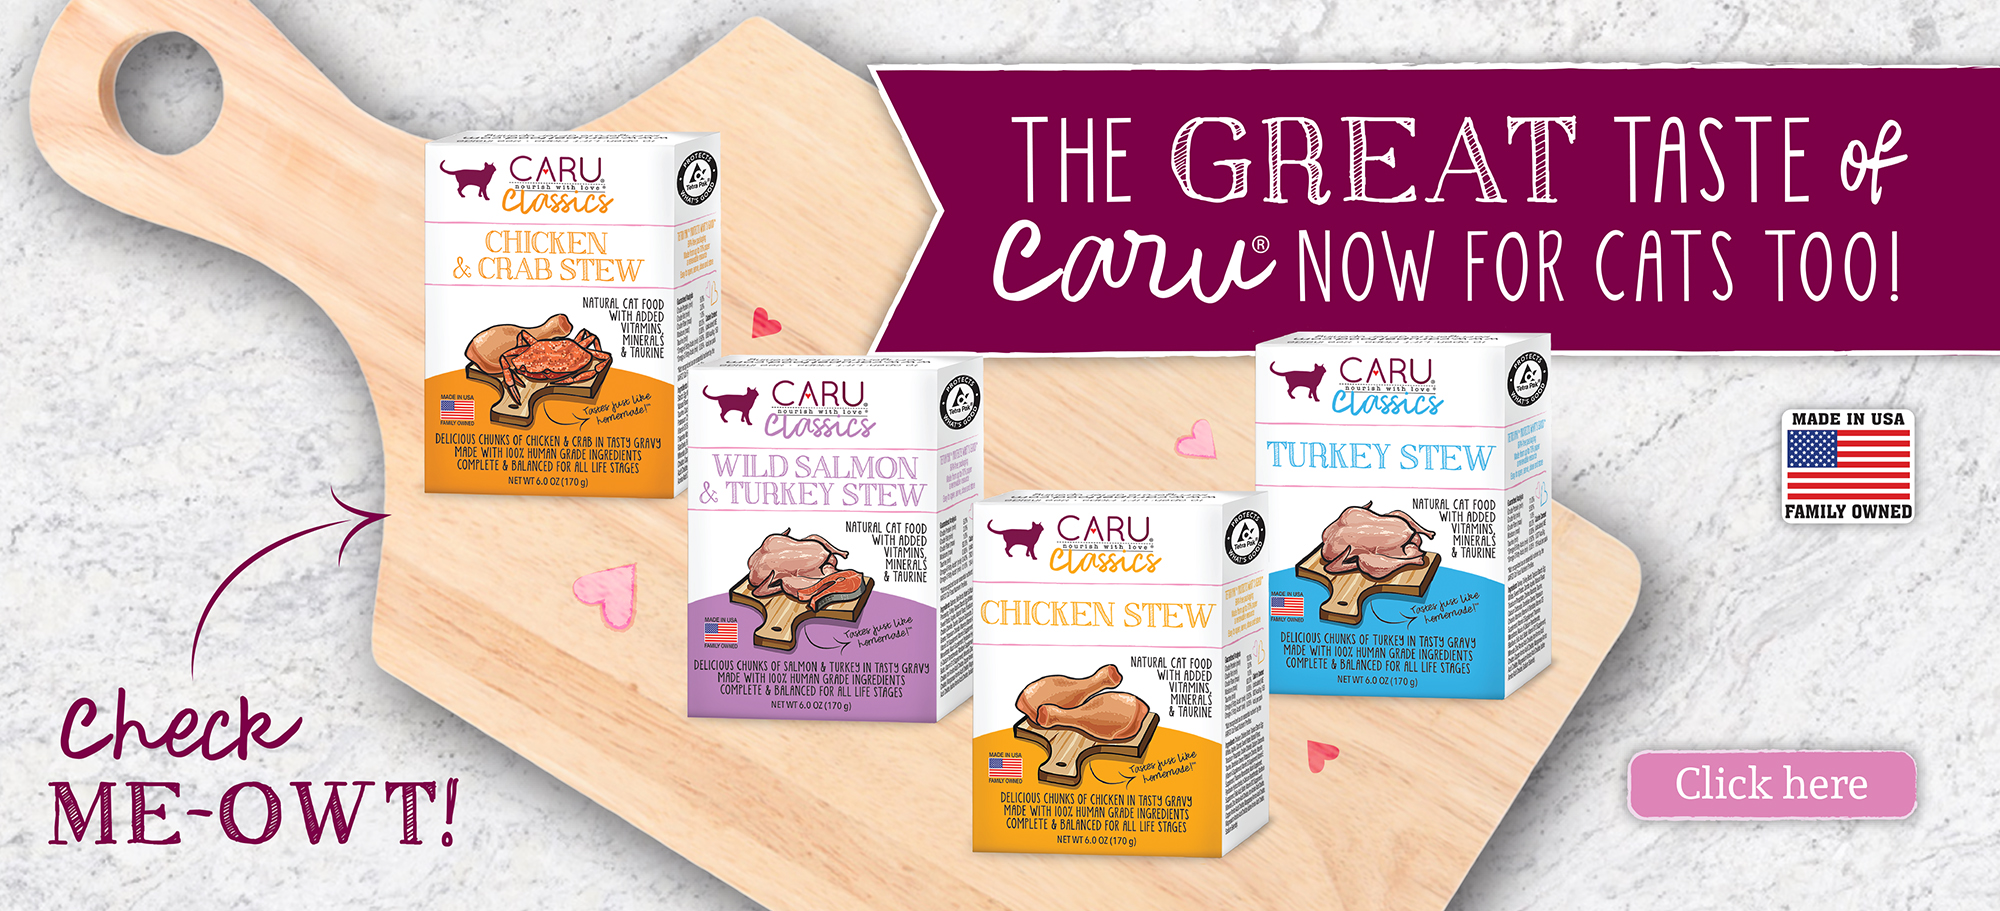 The great taste of Caru now for cats too!